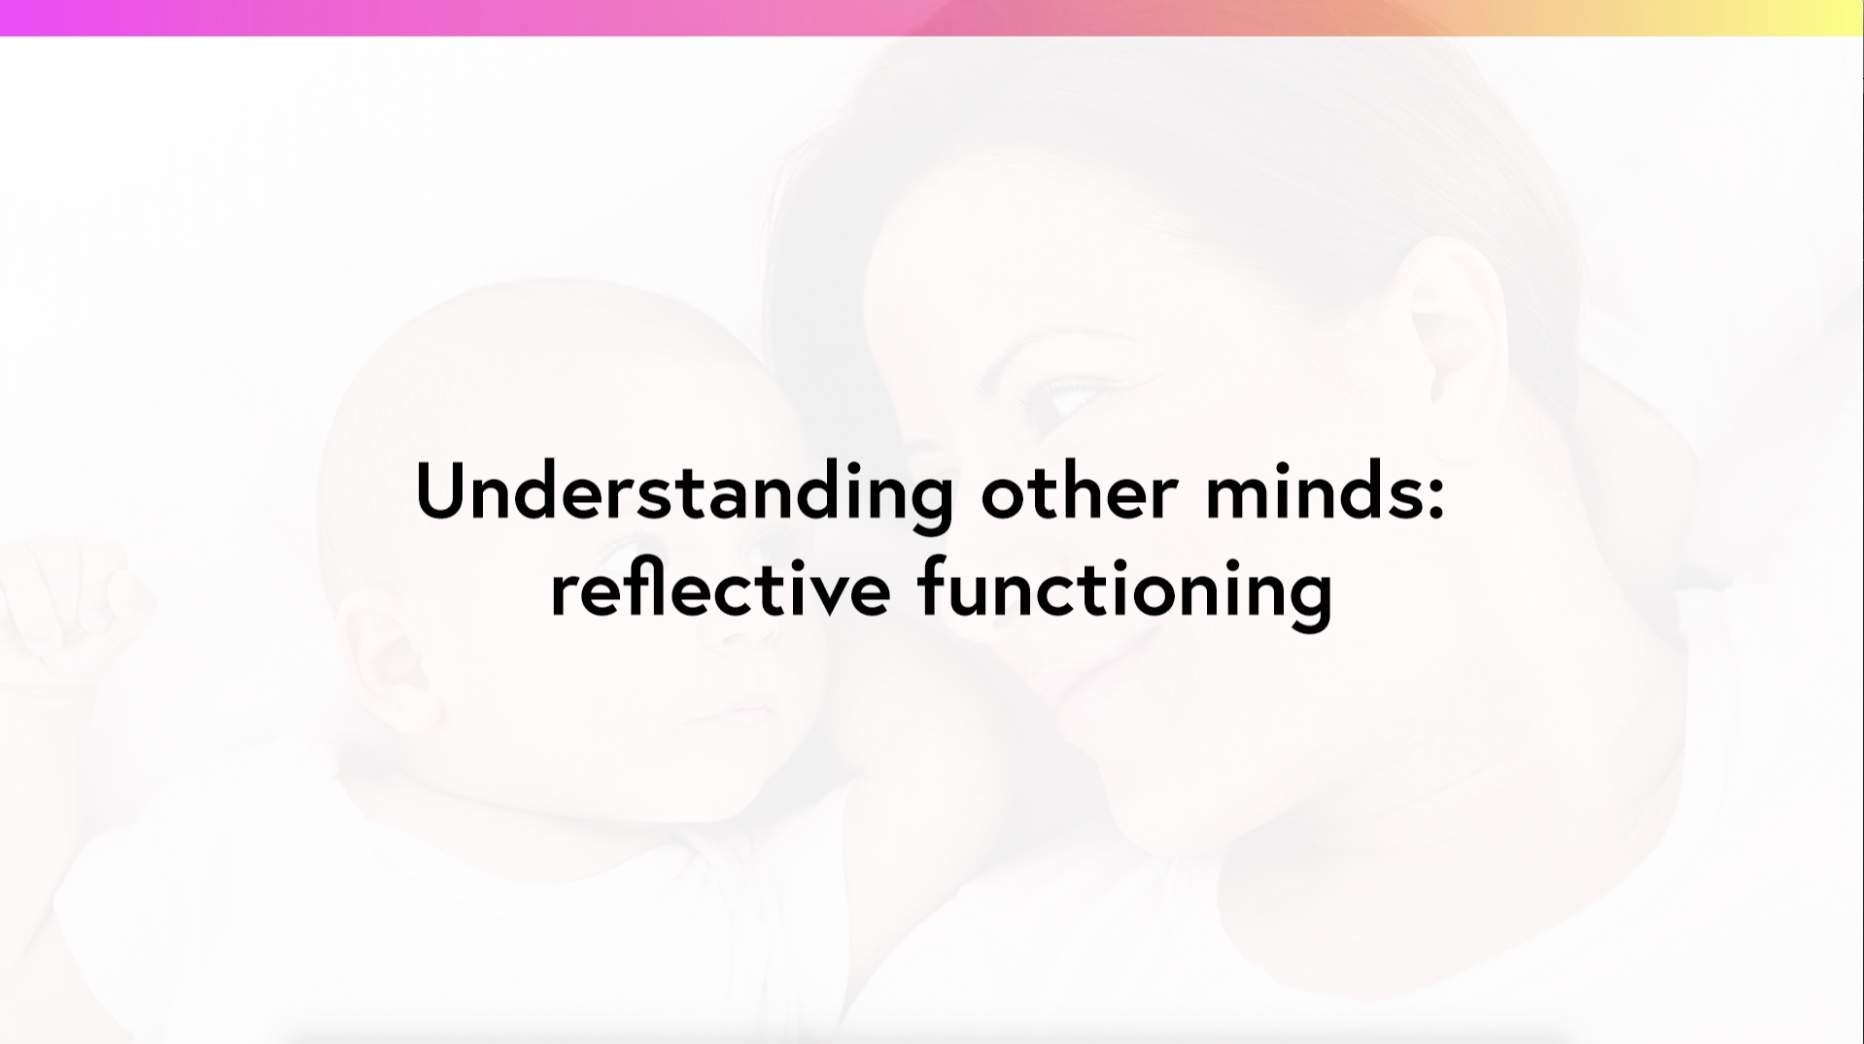 Understanding other minds: reflective functioning